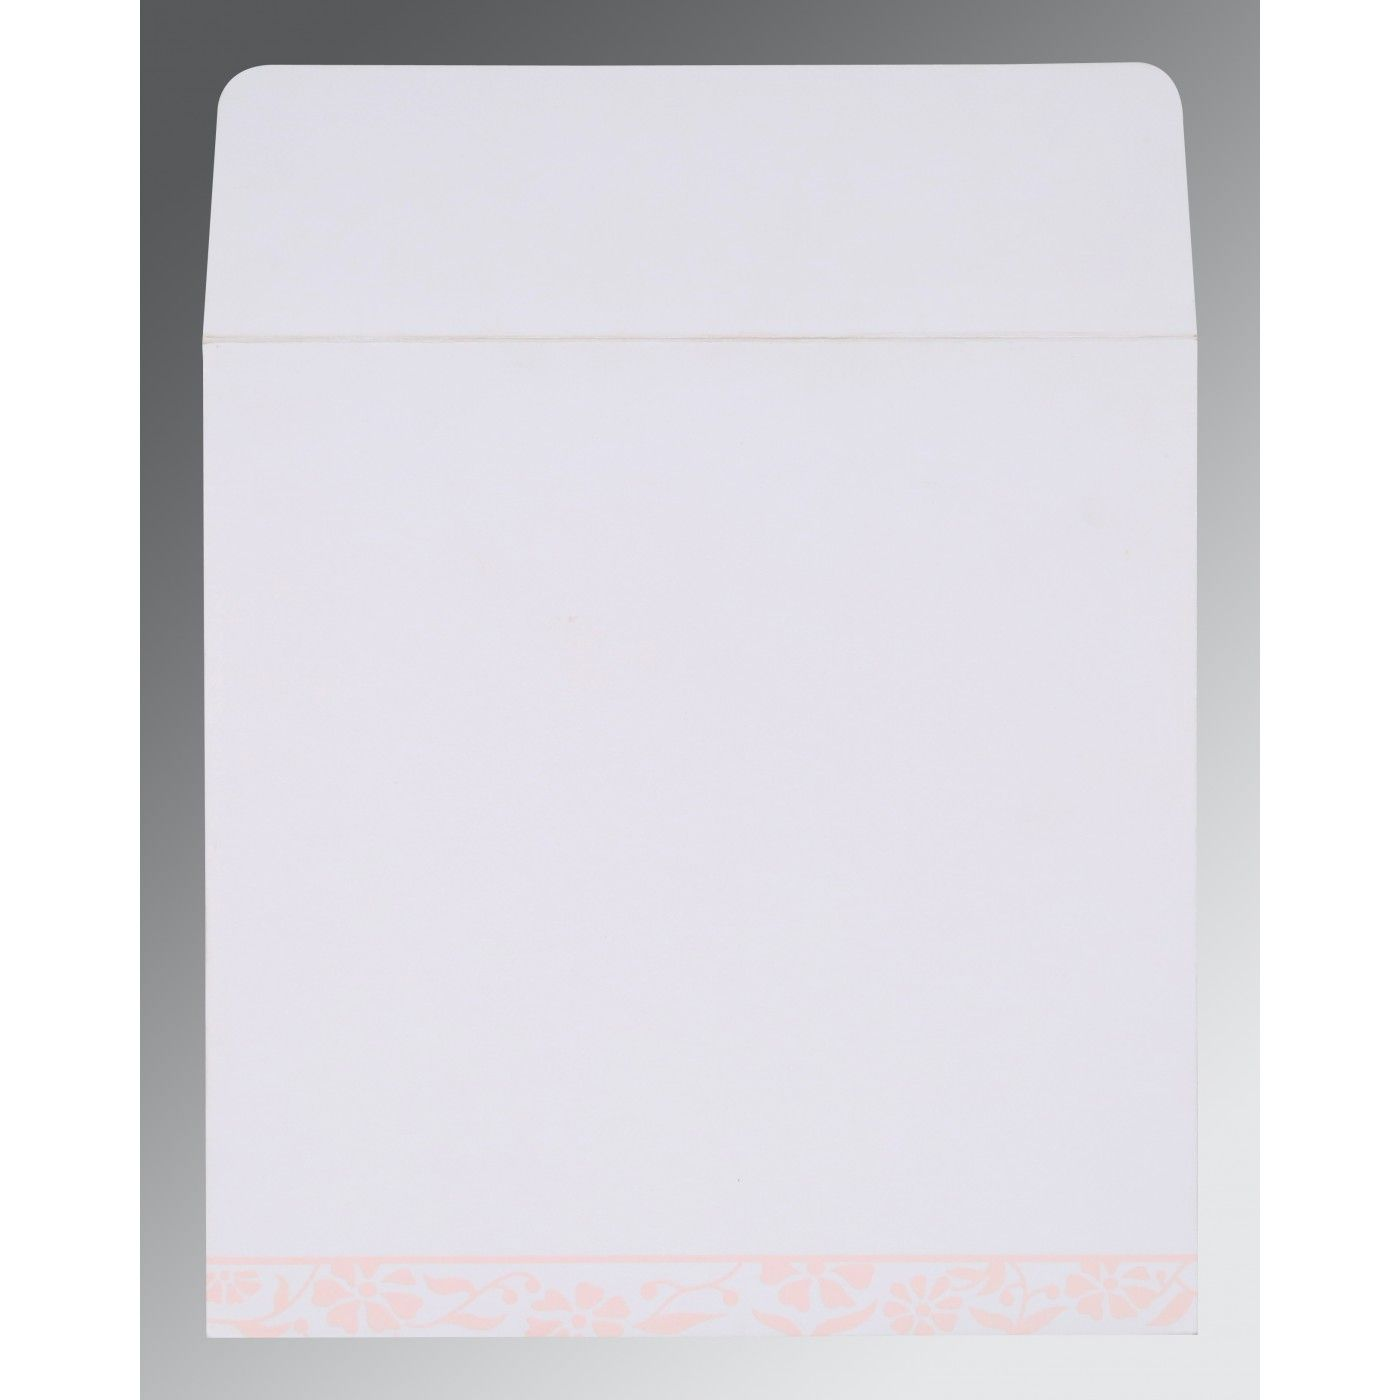 OFF-WHITE MATTE FLORAL THEMED - SCREEN PRINTED WEDDING CARD : CI-8222N - IndianWeddingCards